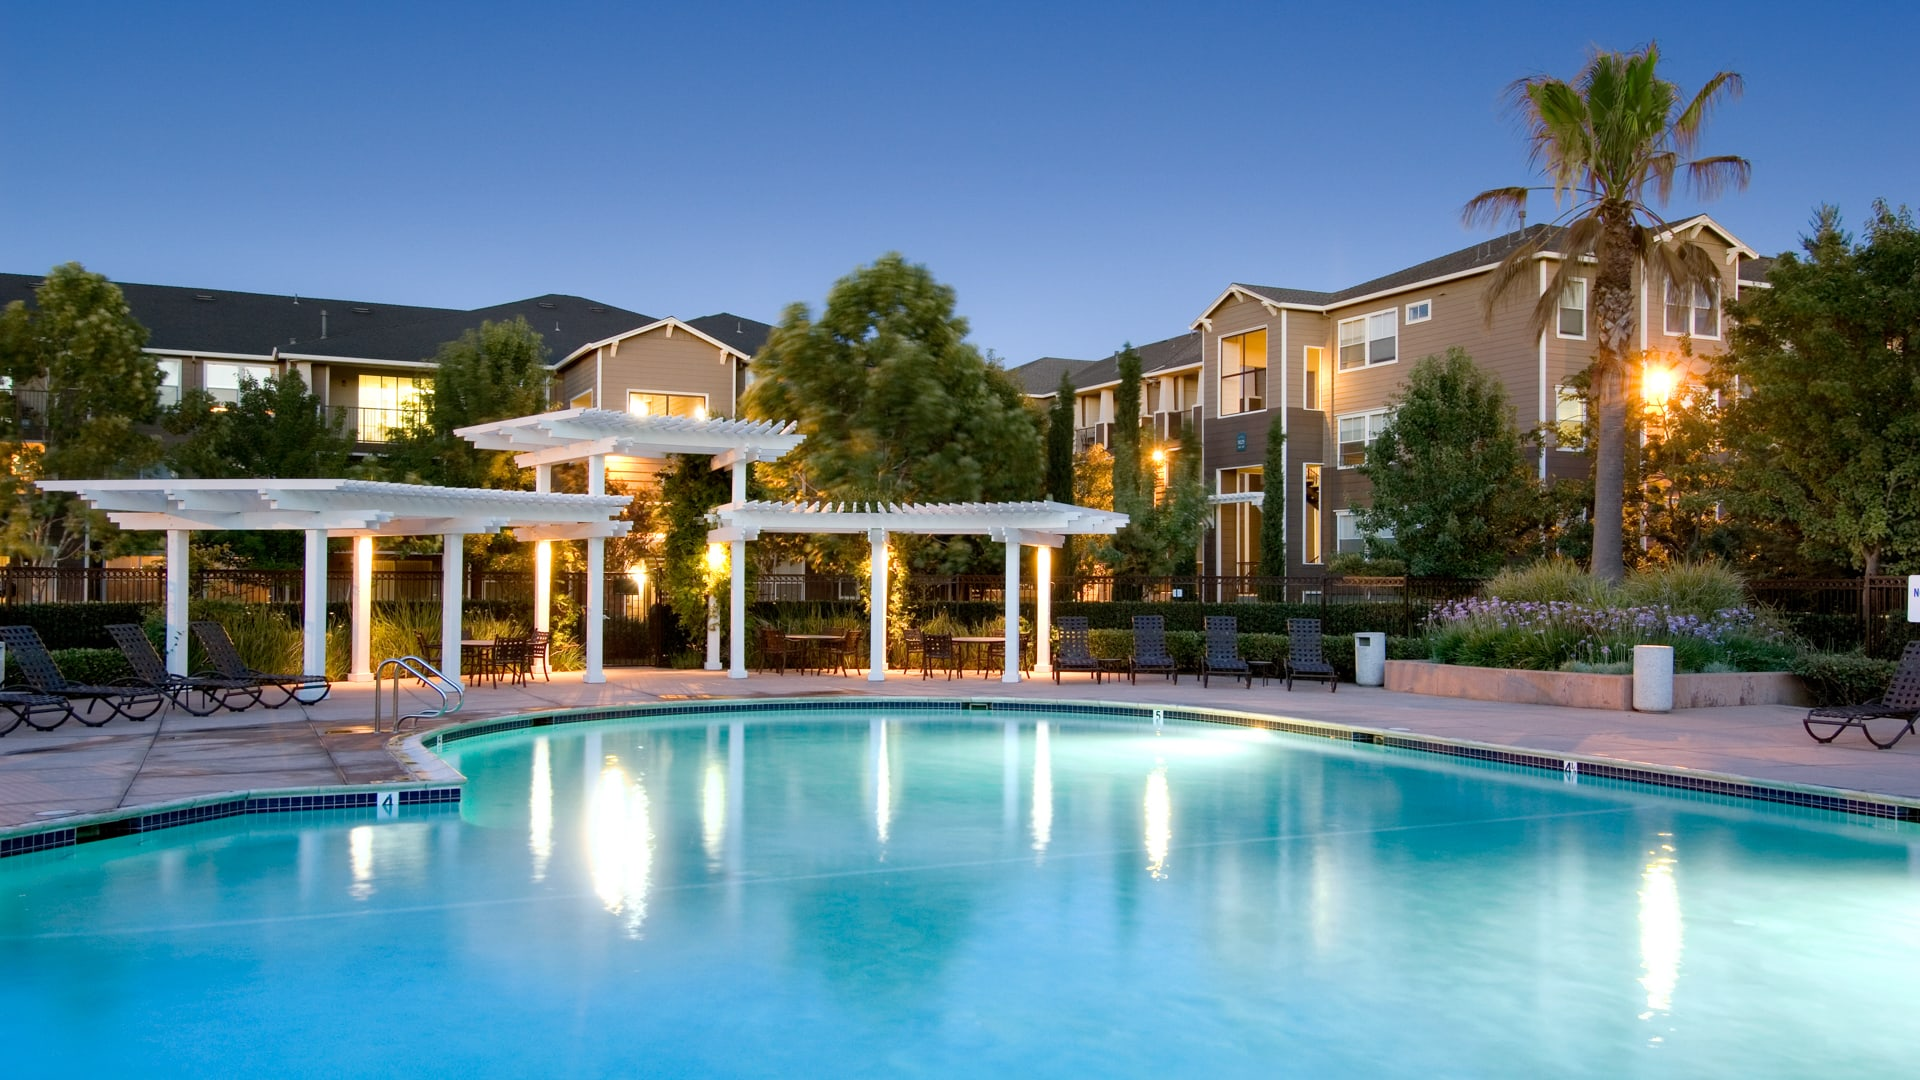 Fountains at Emerald Park Apartments - Pool